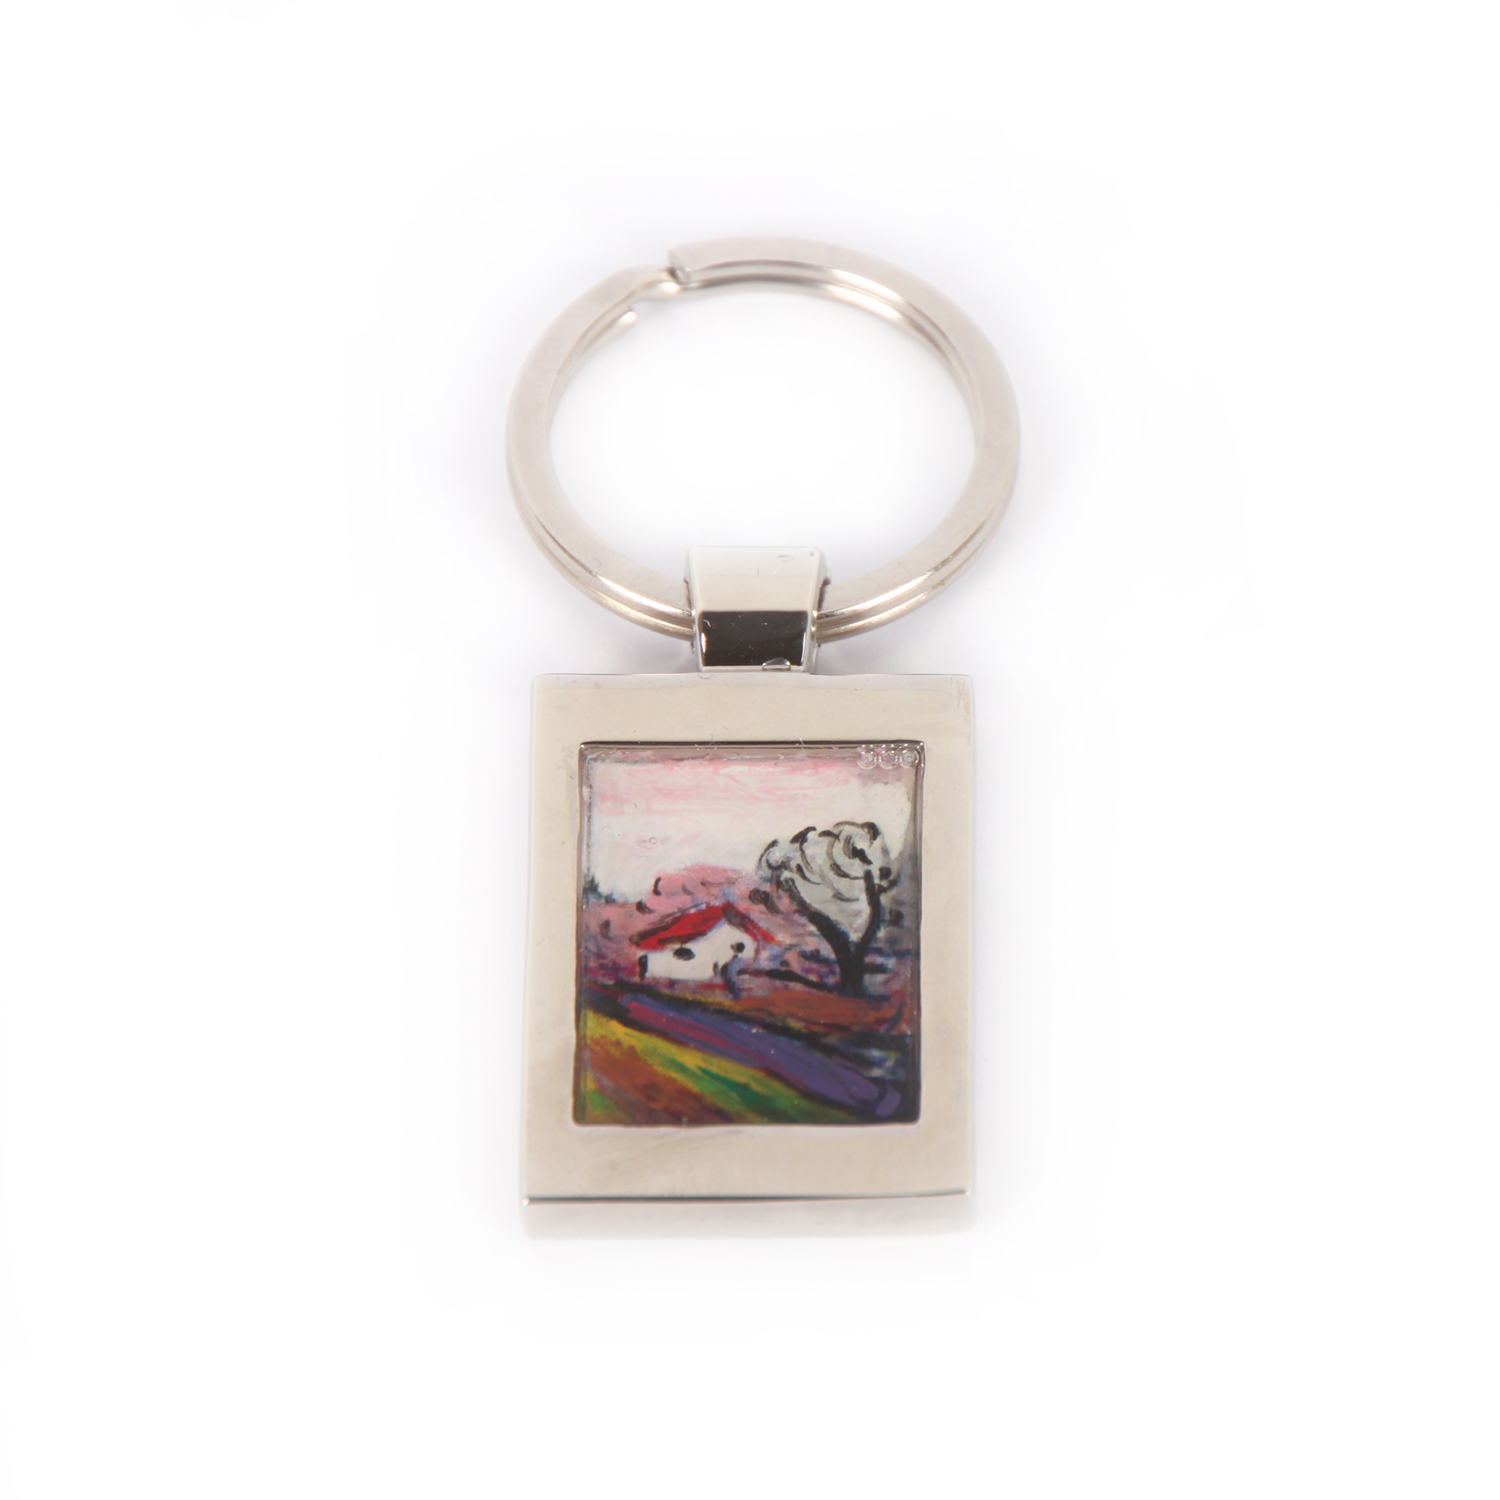 Hand painted keychain - Road to Borre by Munch